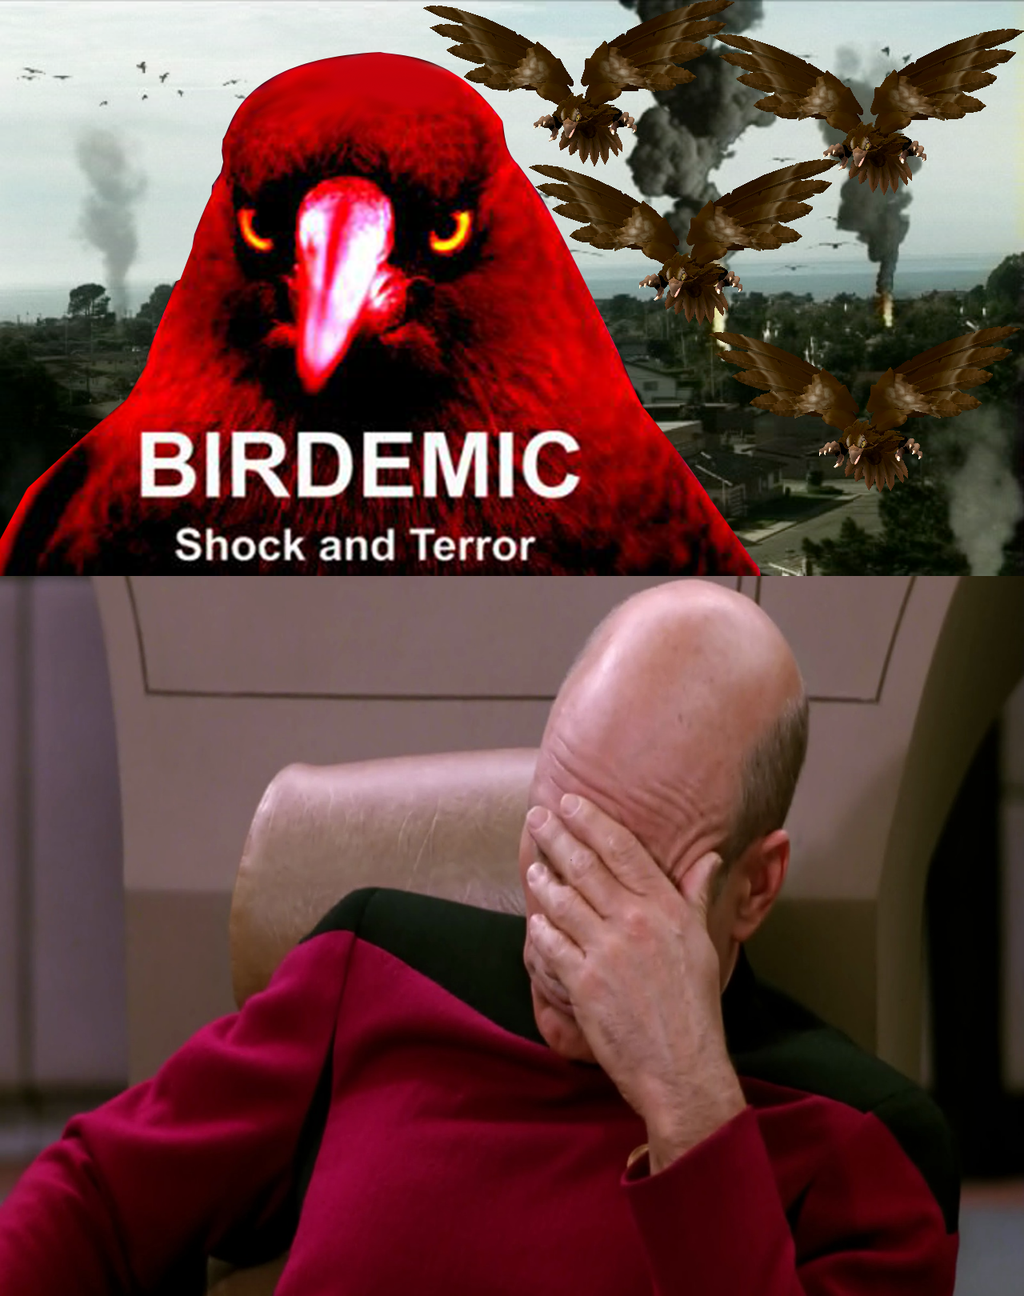 my_reaction_birdemic_meme_2_by_nickanater1-d8tx664